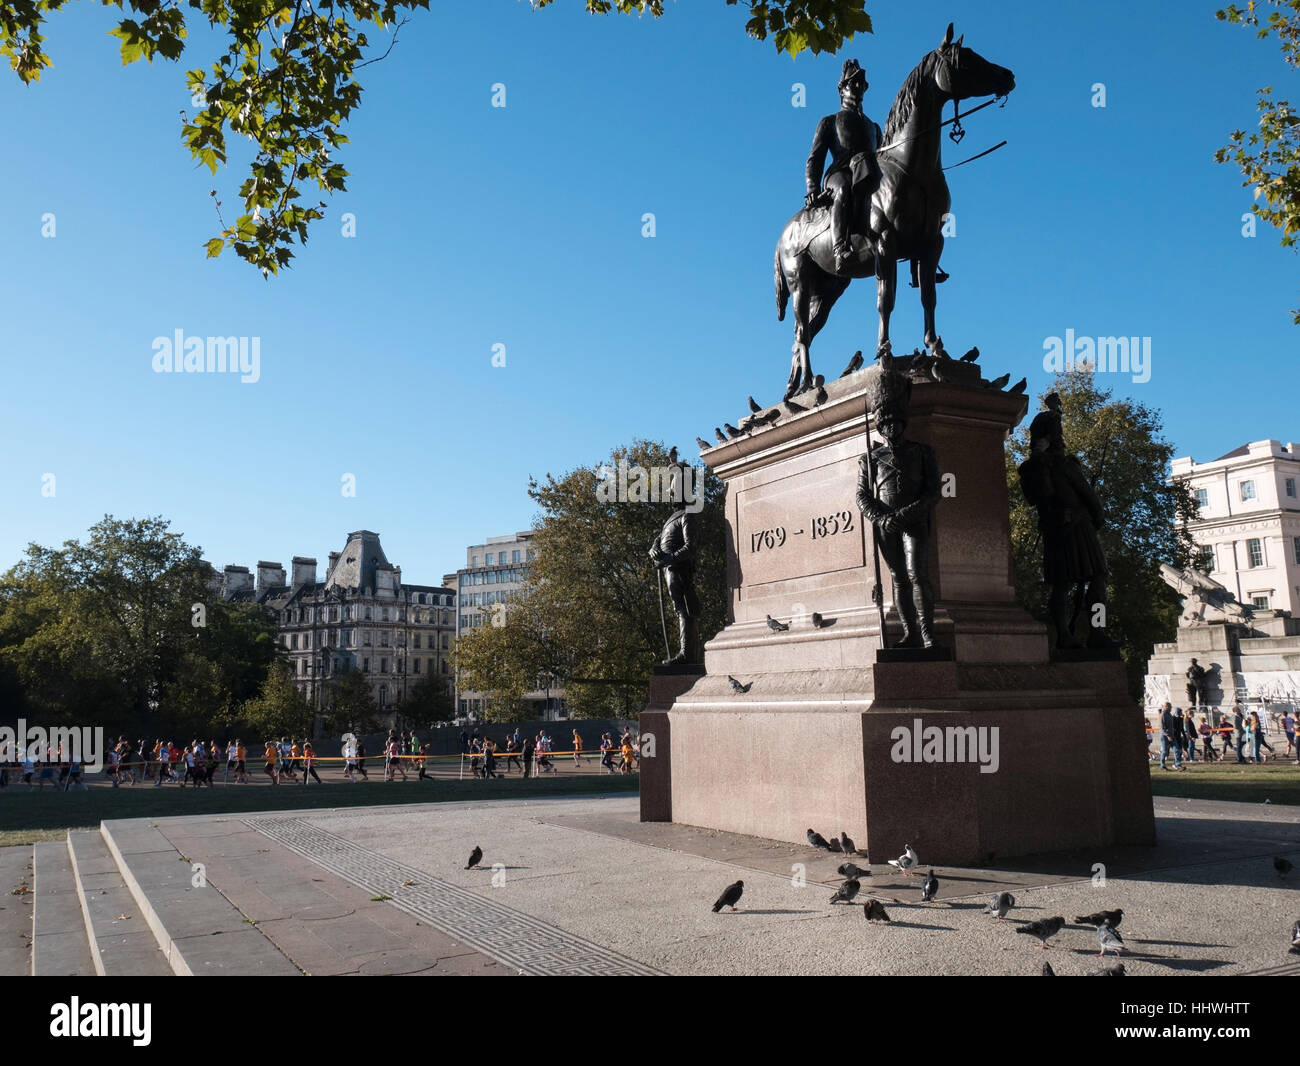 Marathon runners passing by statue of the Duke of Wellington - Stock Image